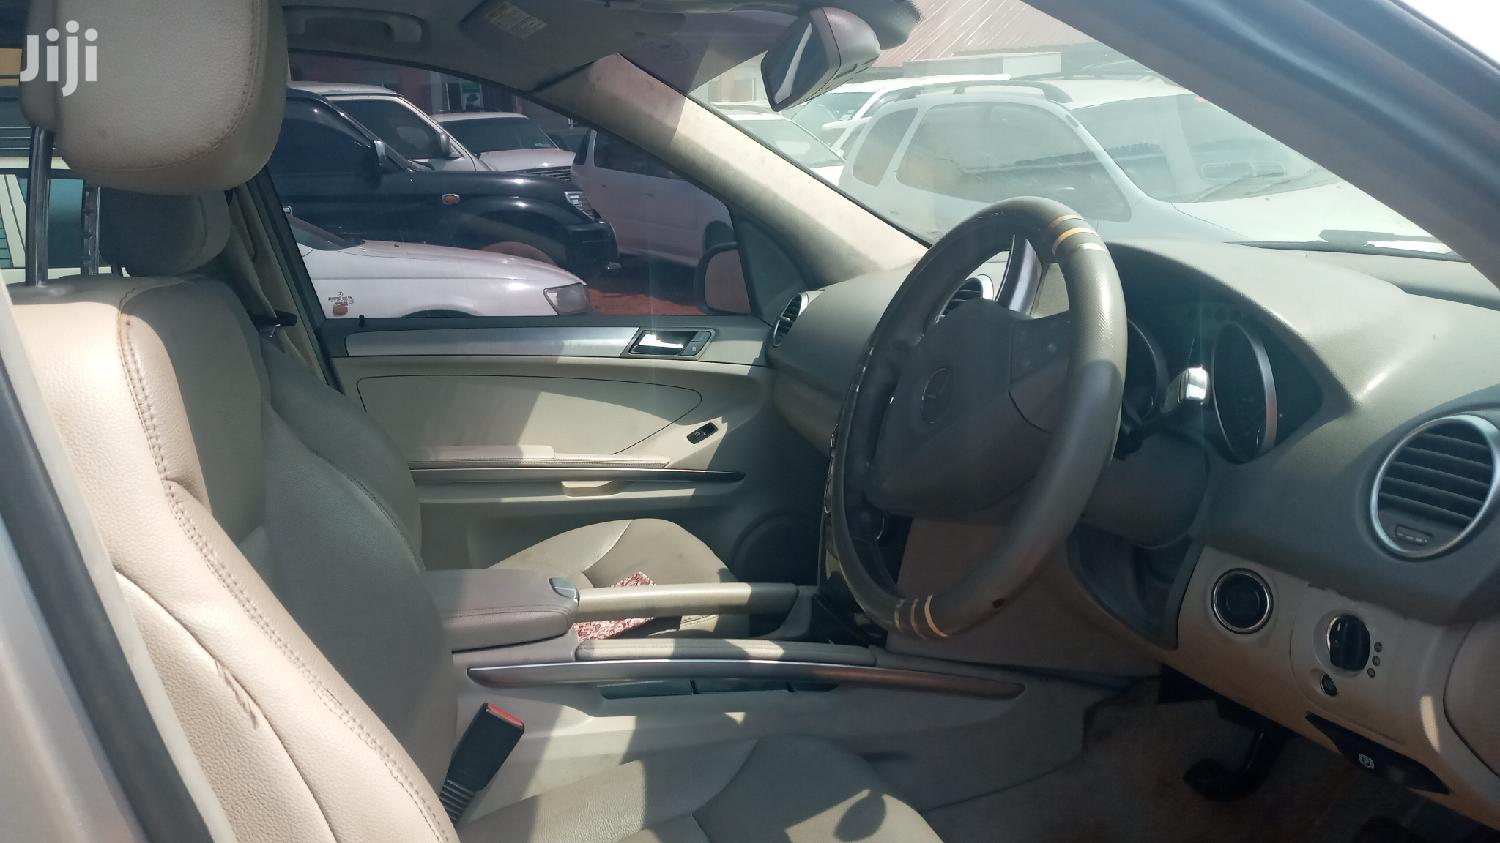 Mercedes-Benz M Class 2005 Gold   Cars for sale in Kampala, Central Region, Uganda